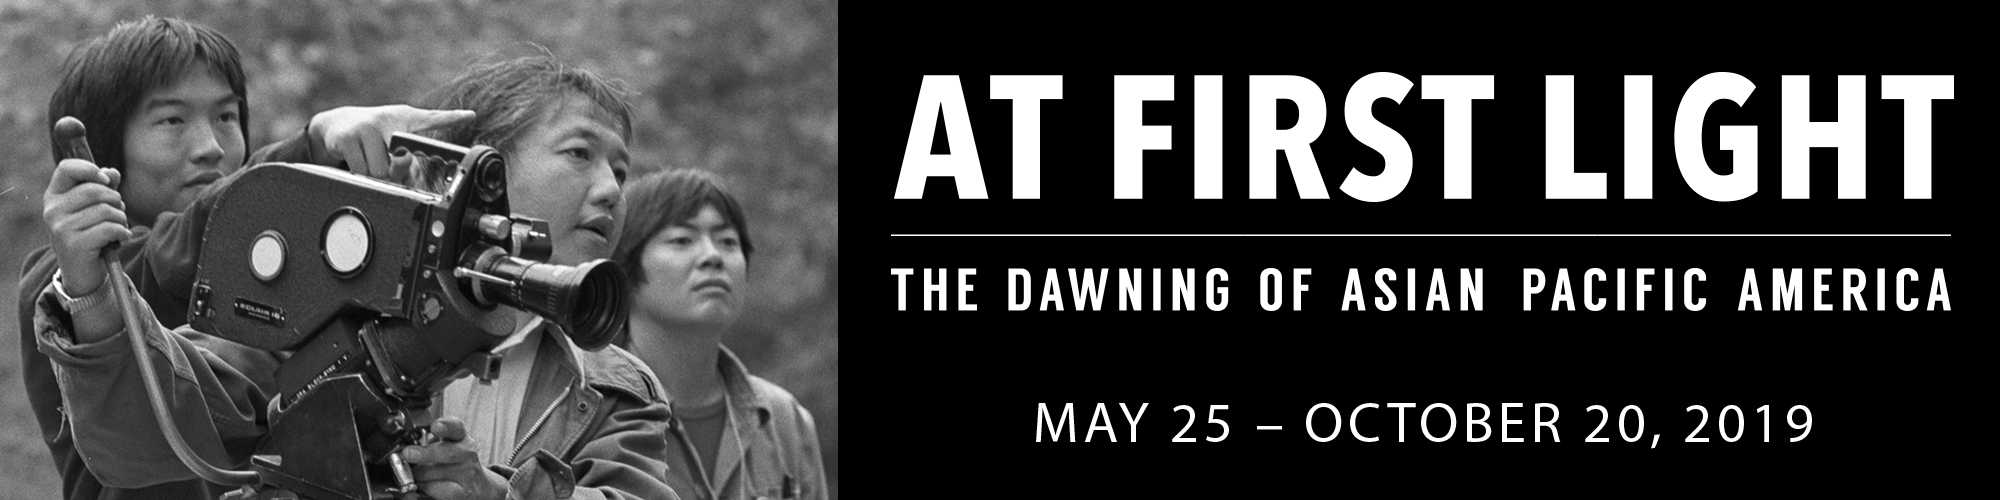 At First Light: The Dawning of Asian Pacific America. May 25 - October 20, 2019